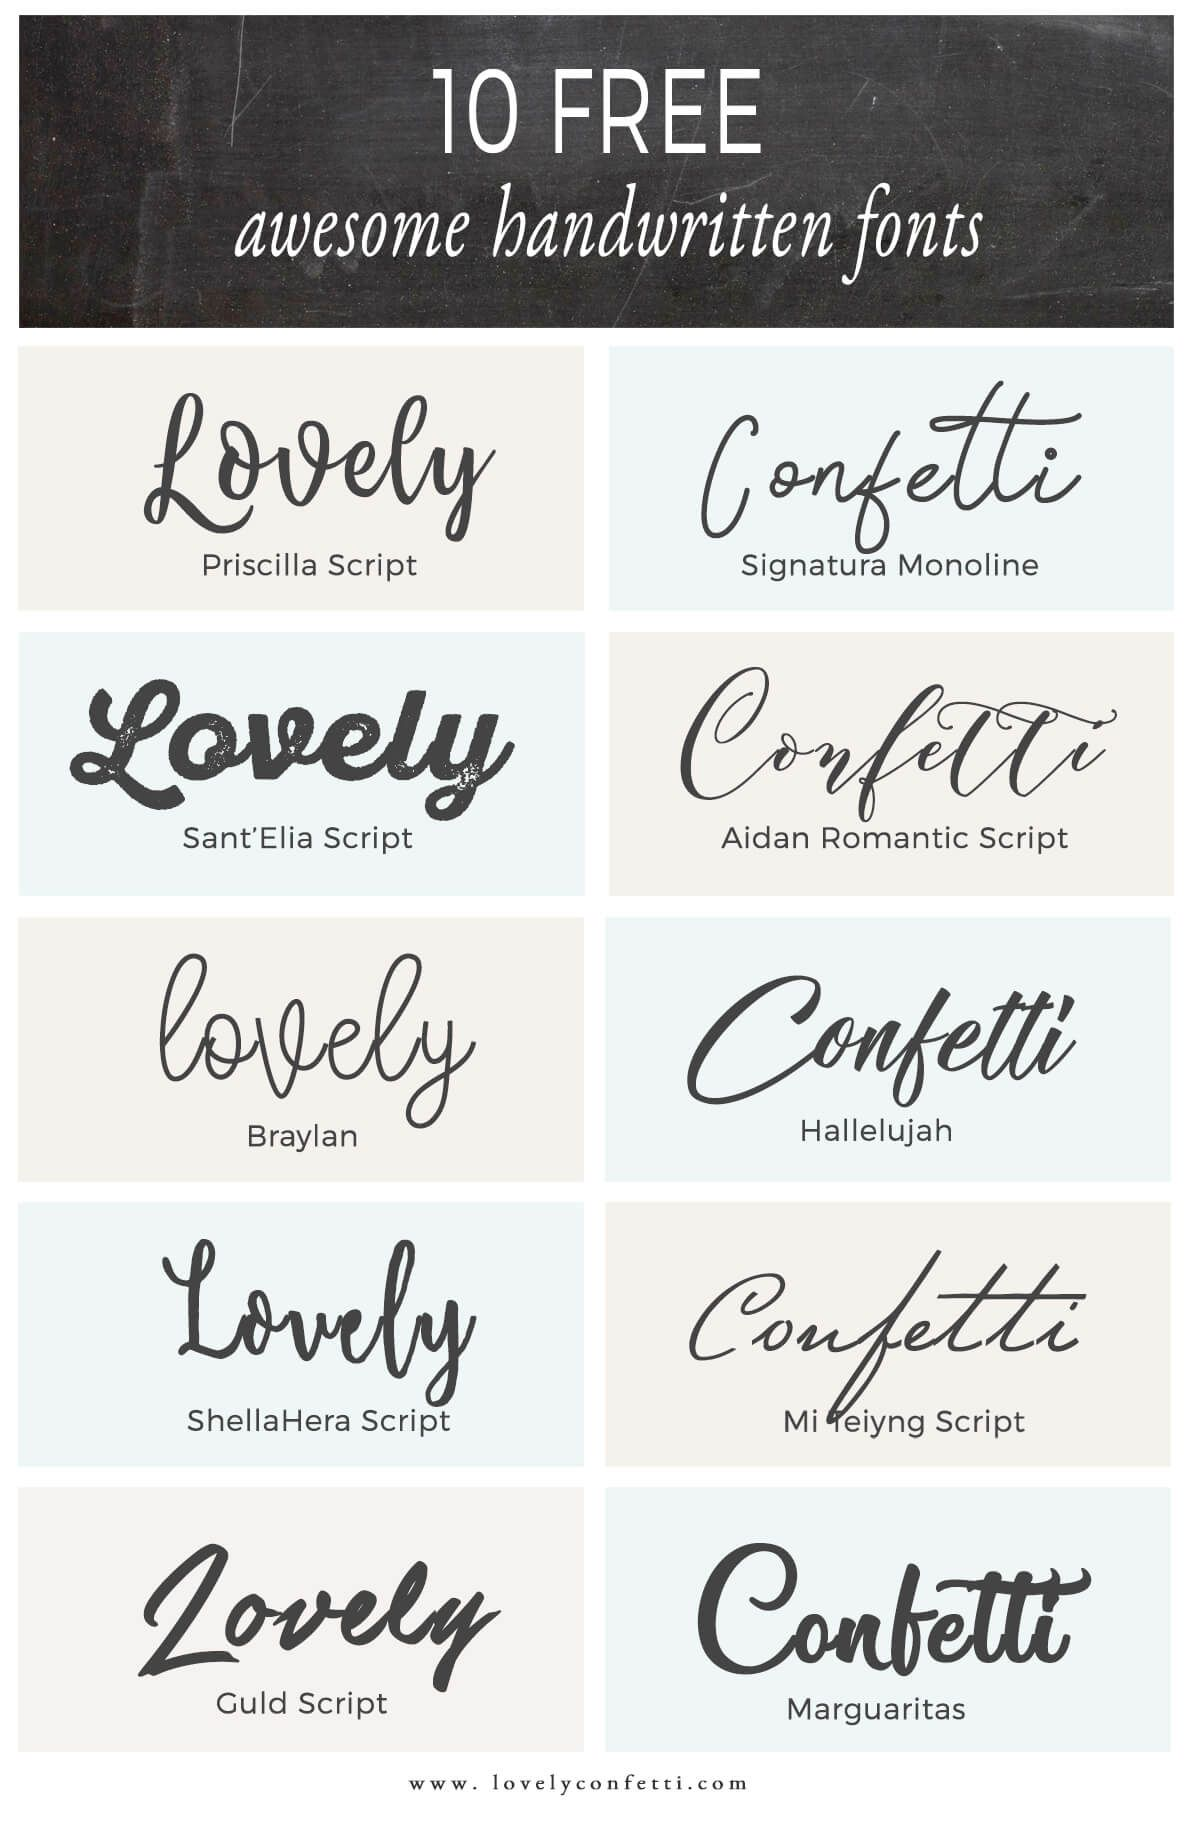 10 Free Awesome Handwritten Fonts